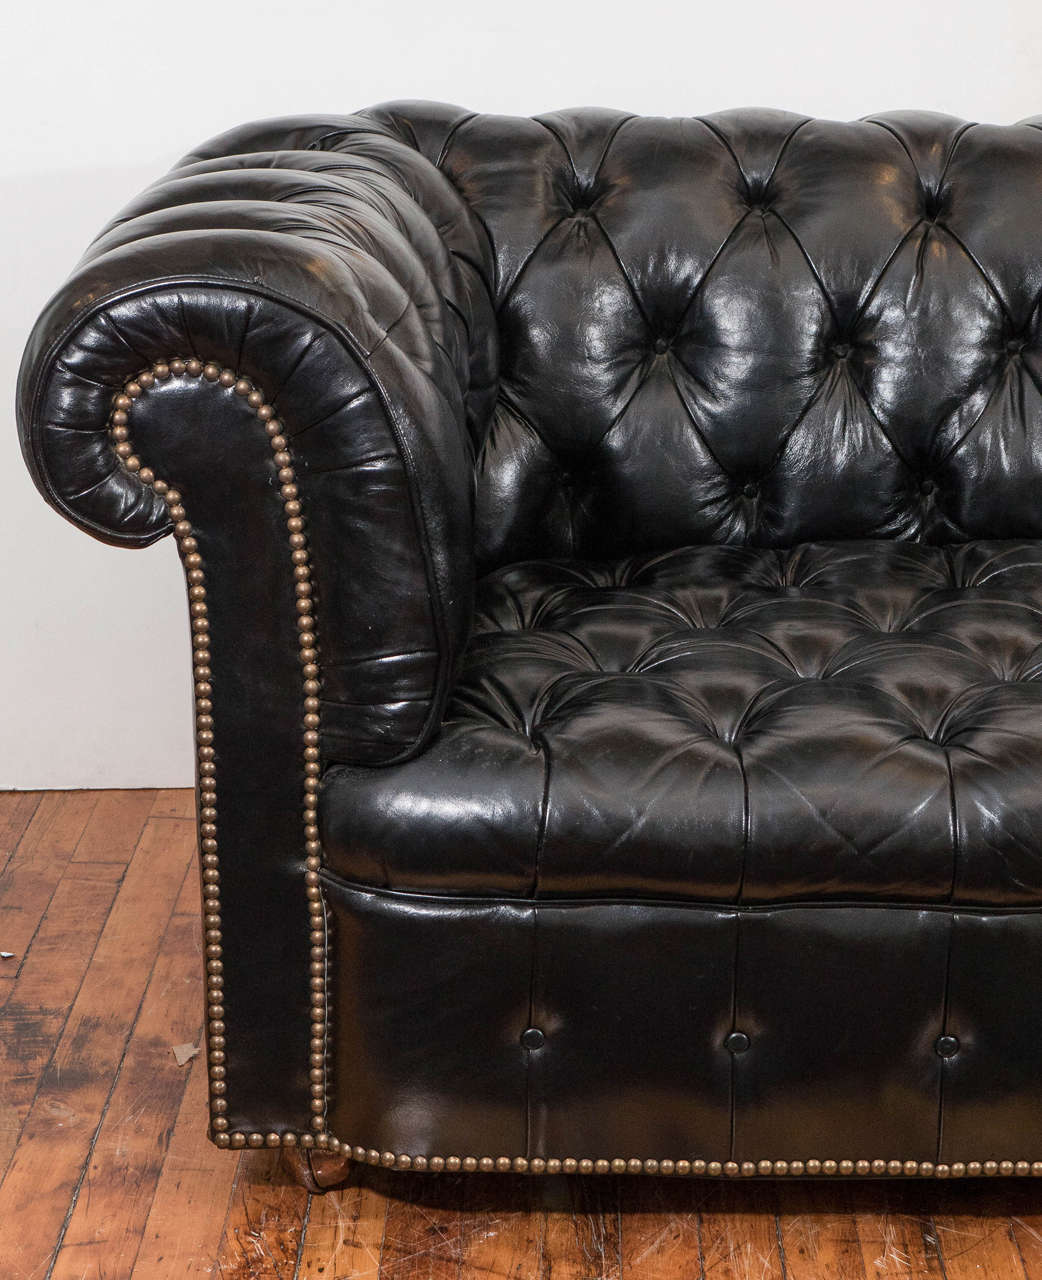 Midcentury Chesterfield Sofa In Tufted Black Leather At